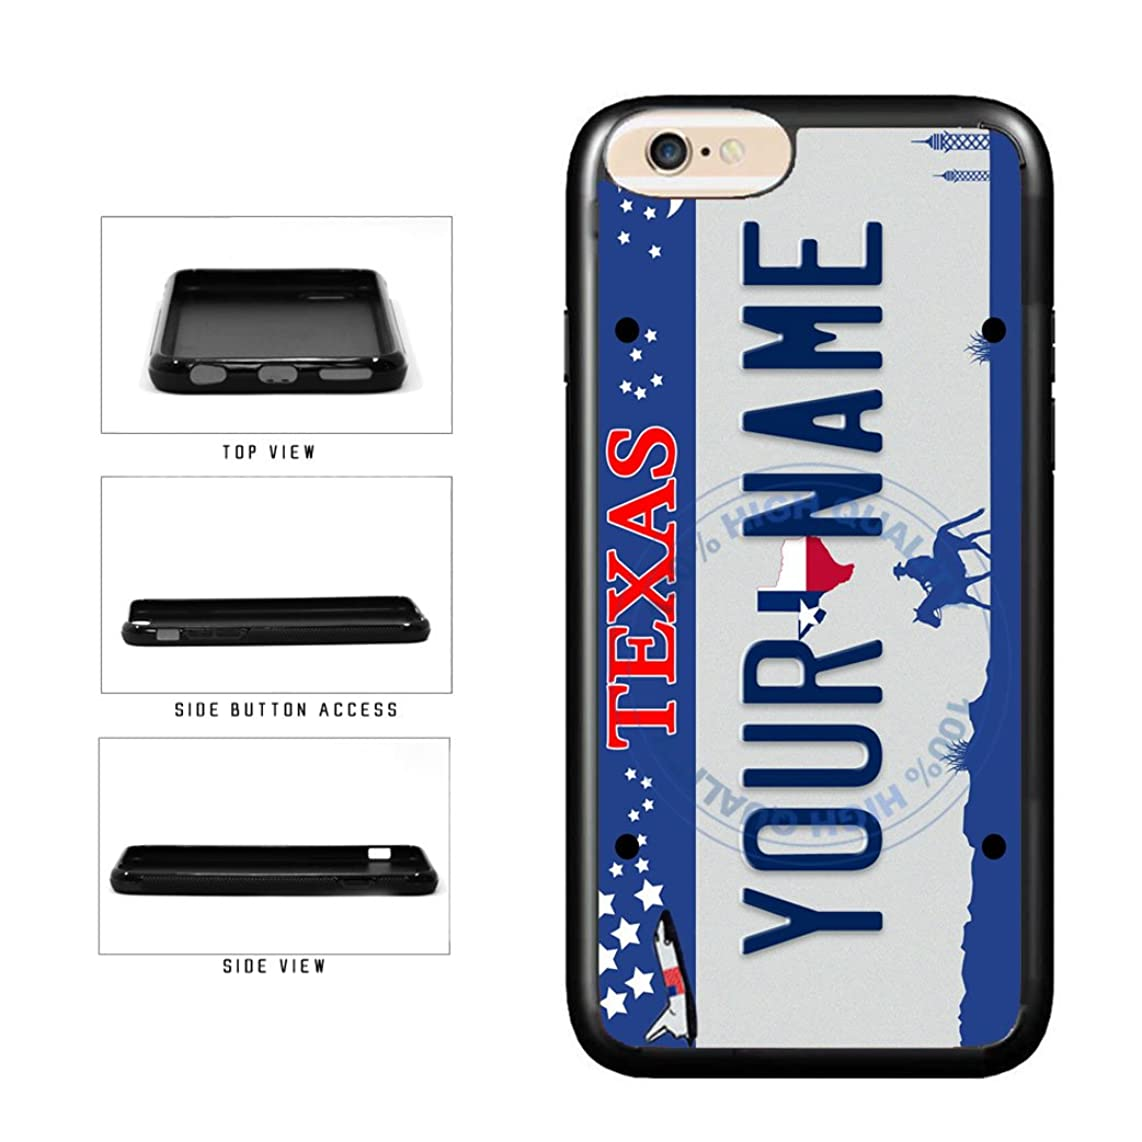 BleuReign(TM) Personalized Custom Name Texas State License Plate TPU RUBBER SILICONE Phone Case Back Cover For Apple iPhone 6 Plus and iPhone 6s Plus (5.5 Inches Screen)